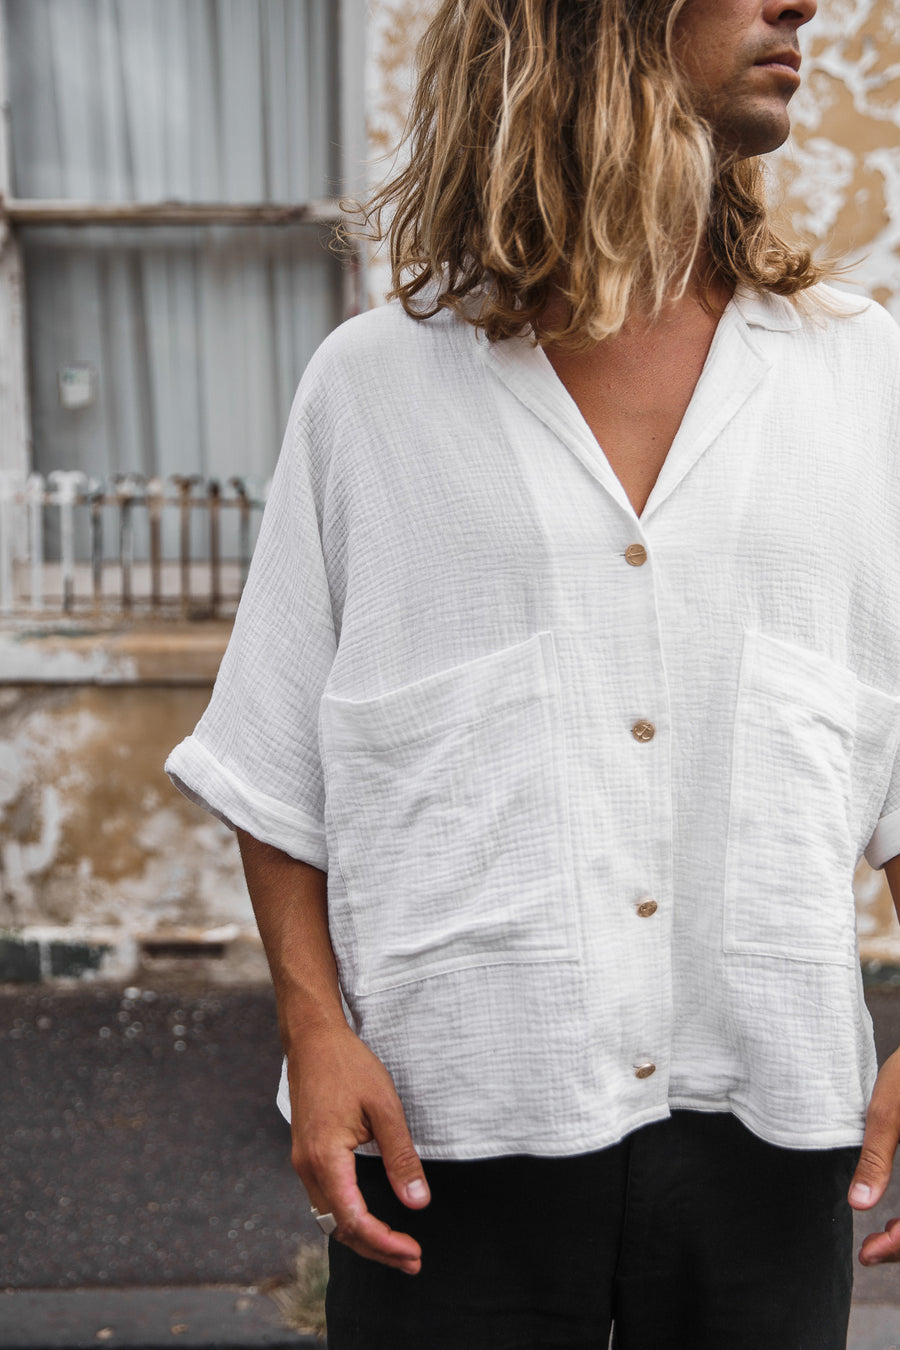 BRELLA - White Short Sleeve Shirt